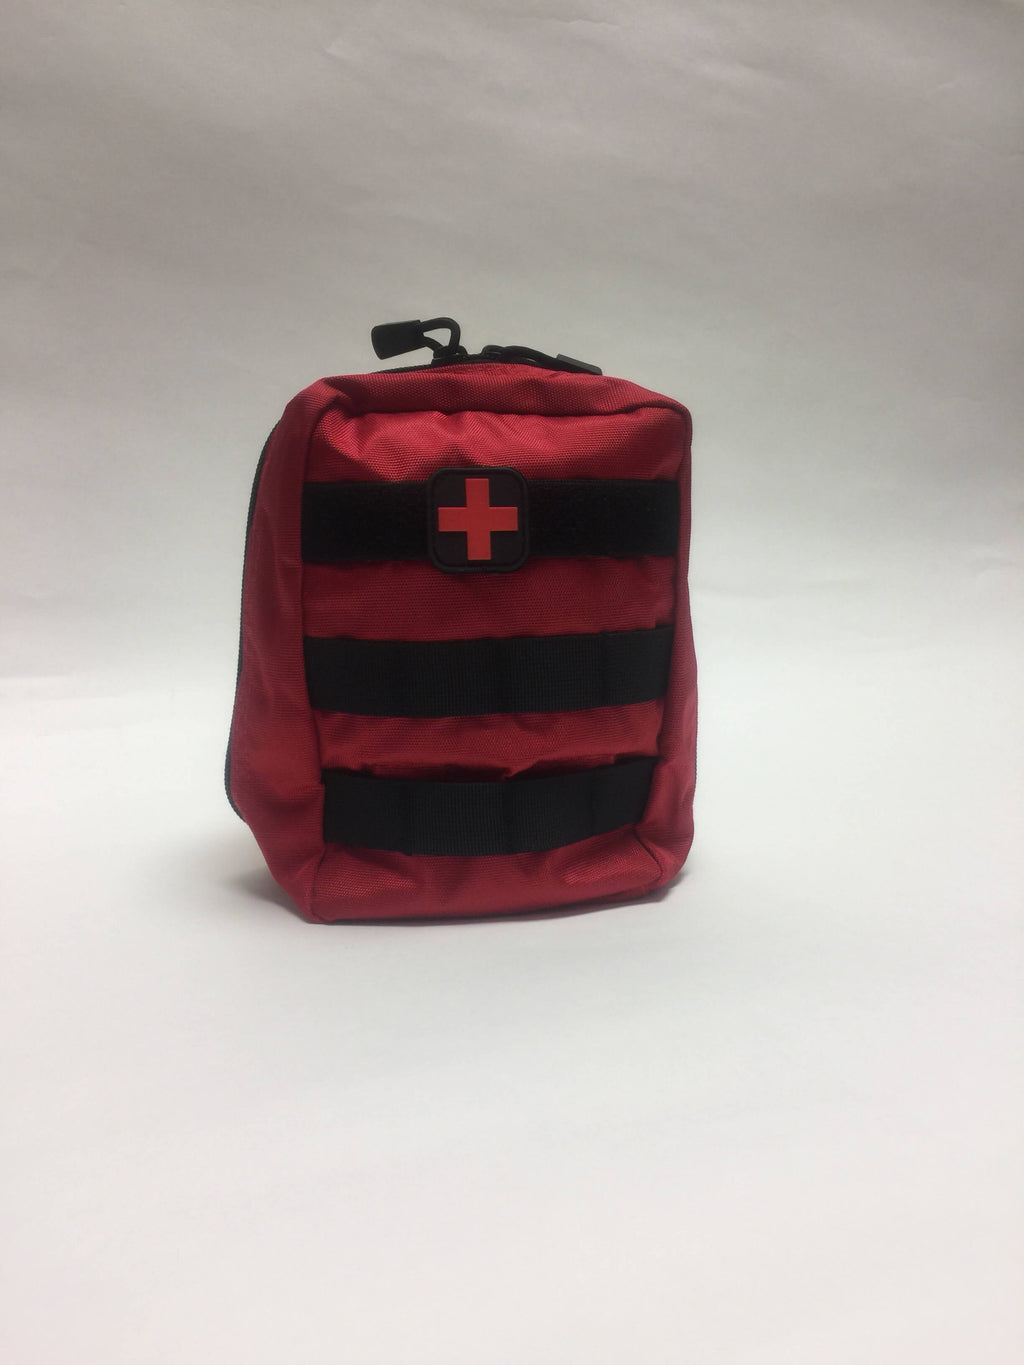 Basic Bleeding Control Kit in Nylon Bag